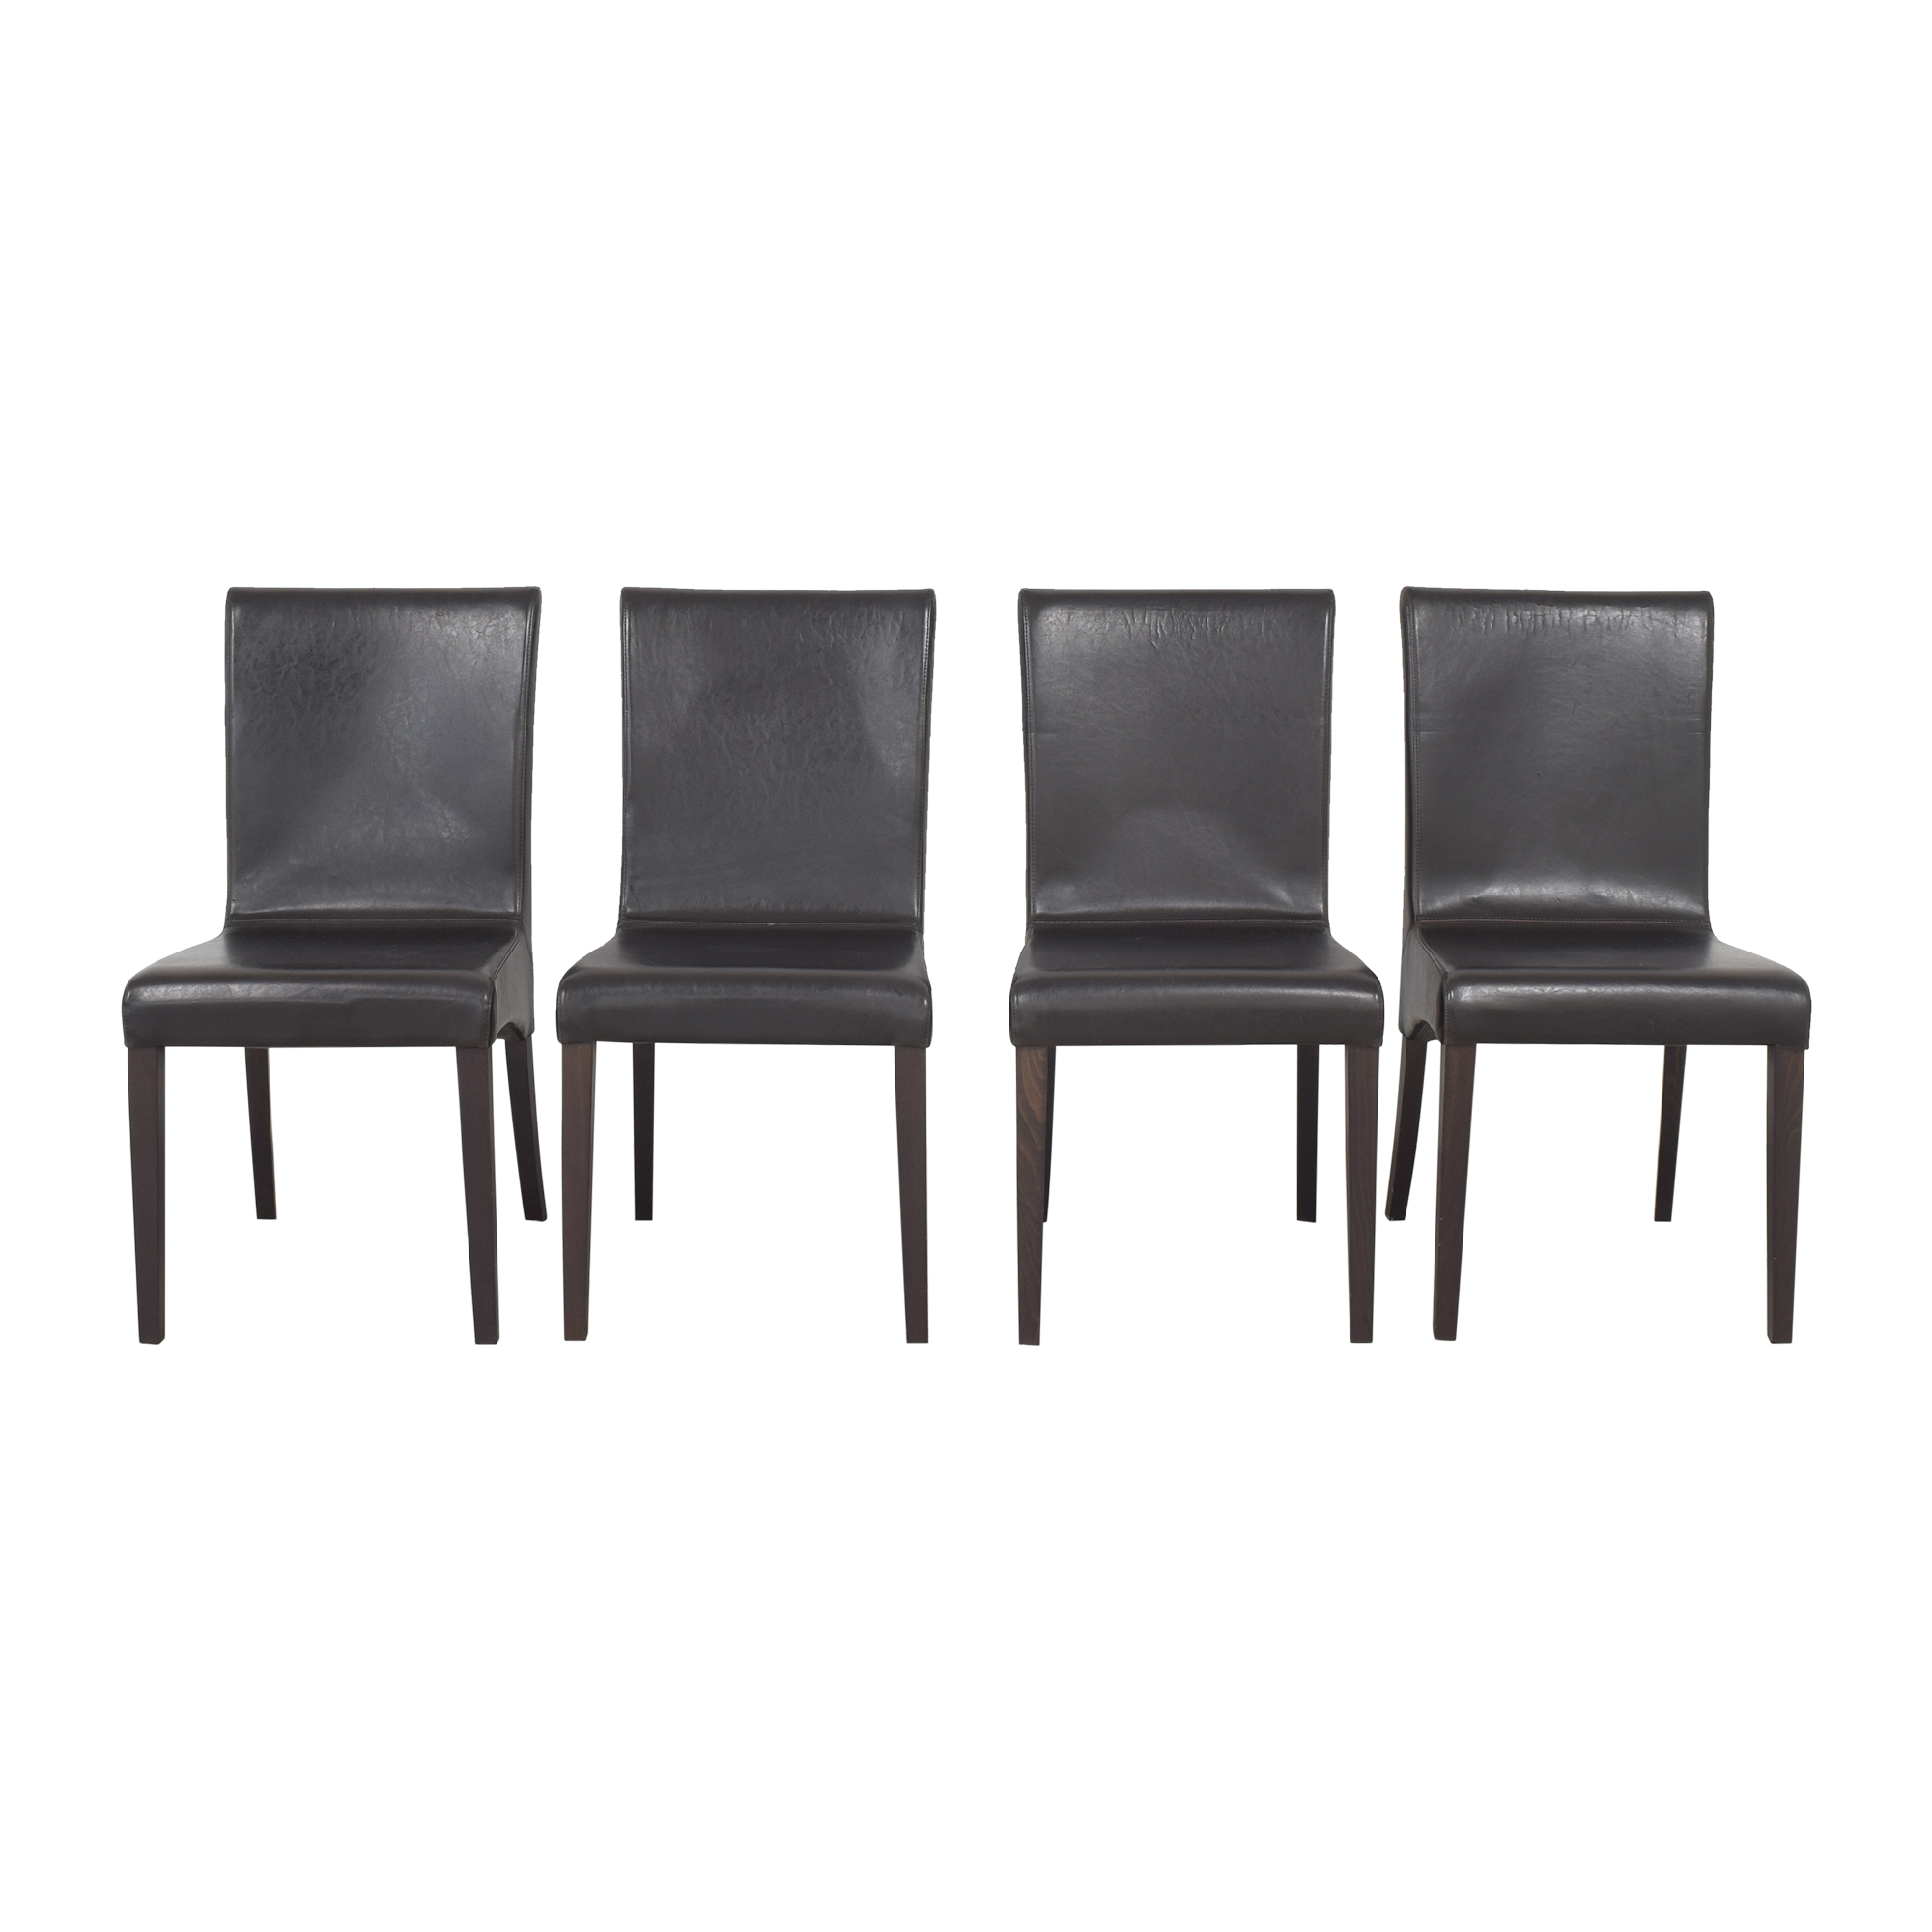 Bloomingdale's Upholstered Dining Chairs / Chairs